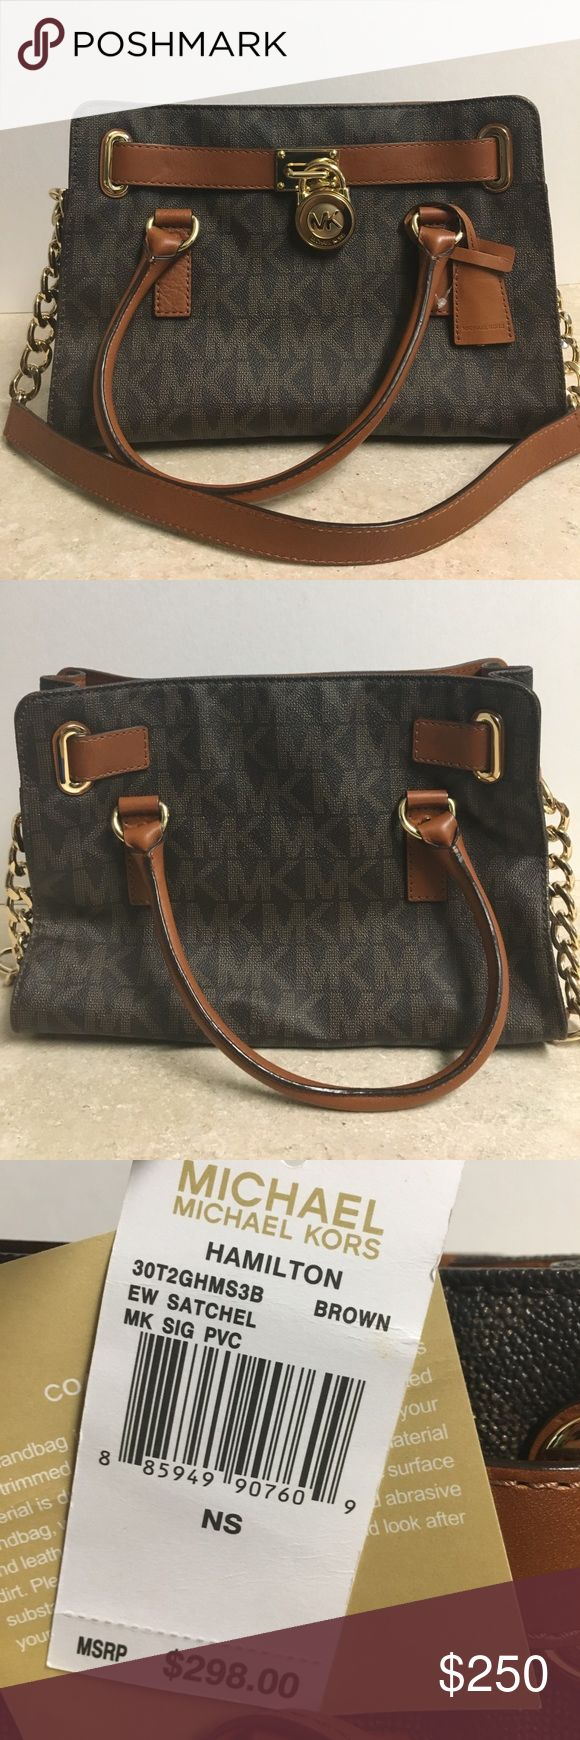 NEW!! Michael Kors Hamilton brown satchel NEW! Michael Kors purse comes with a dustbag Michael Kors Bags Satchels